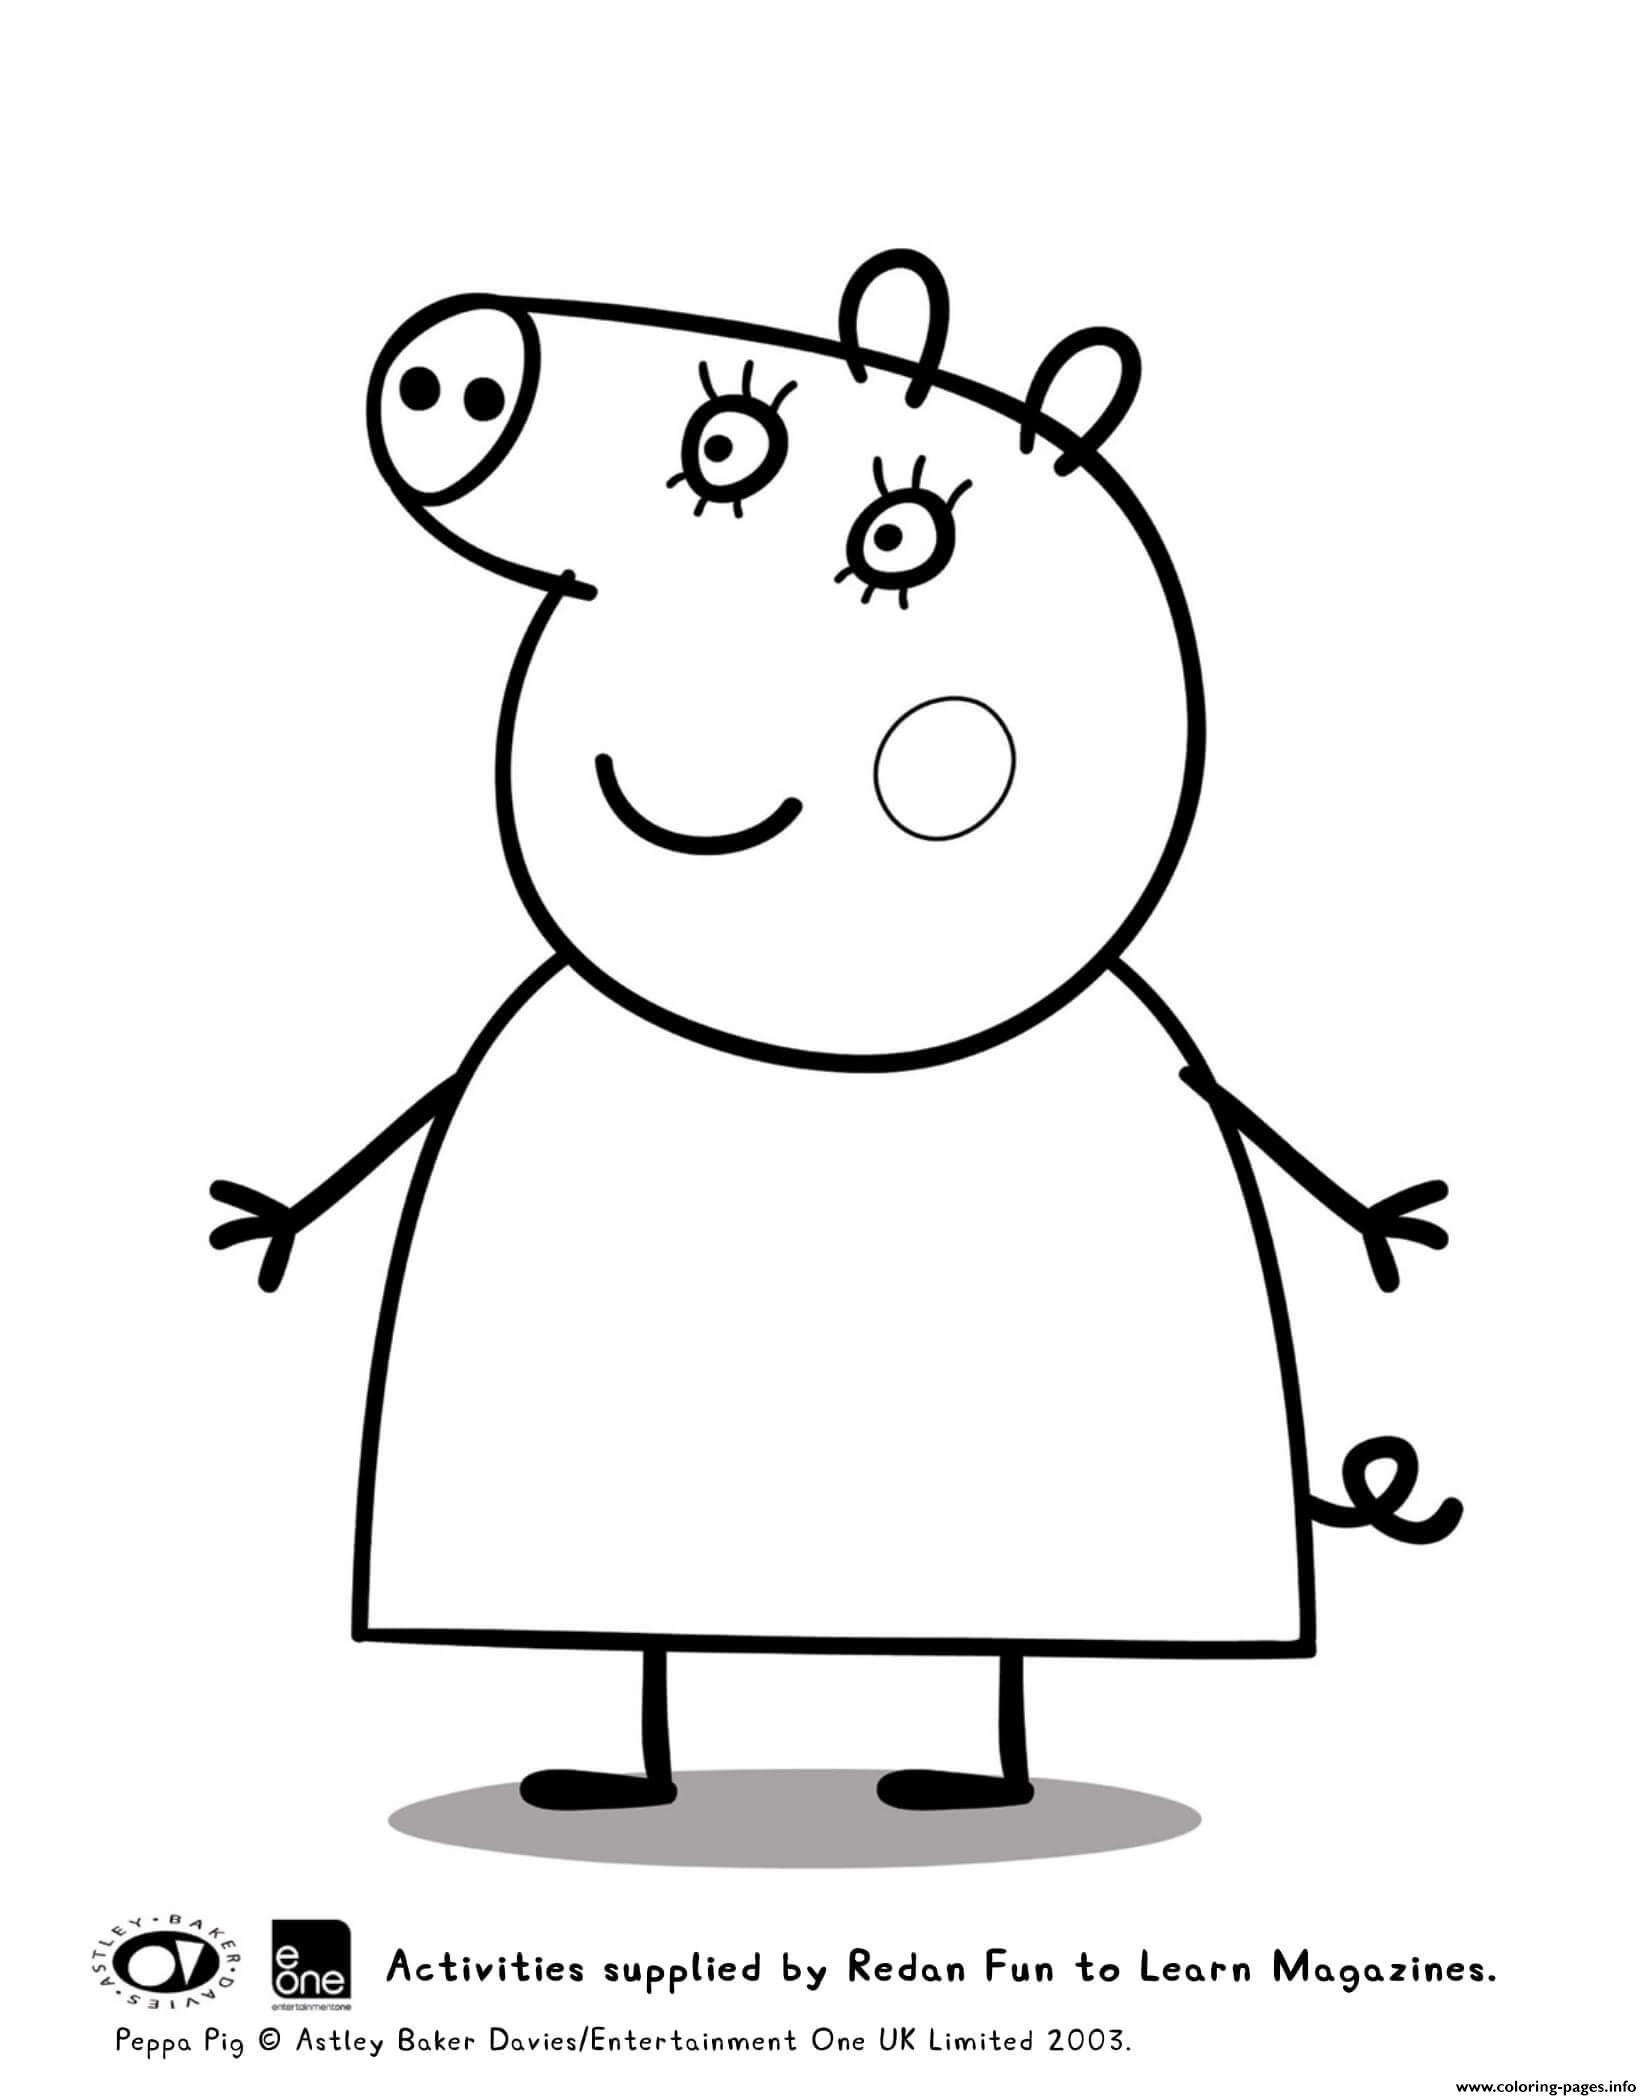 Coloring Pages : Mummy Peppa Pig Coloring Printable Pictures pour Peppa Pig A Colorier